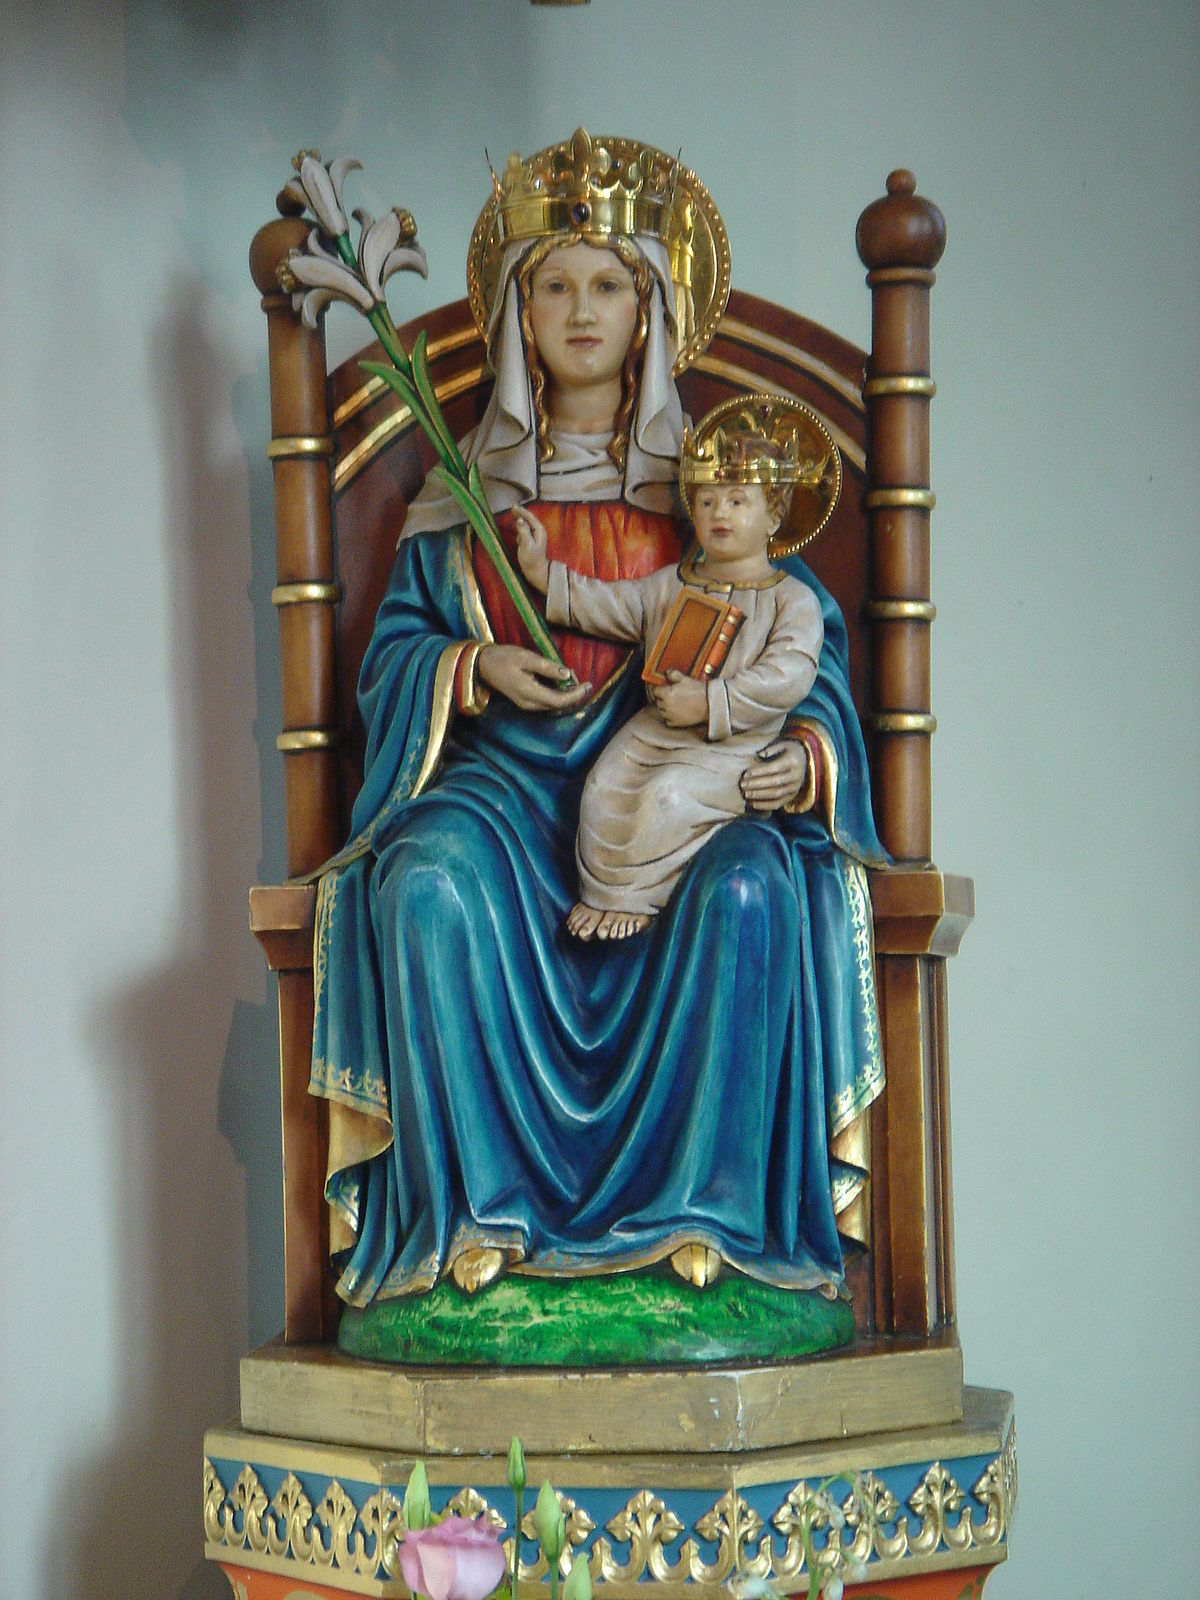 https://upload.wikimedia.org/wikipedia/commons/thumb/1/12/Our_Lady_of_Walsingham.JPG/1200px-Our_Lady_of_Walsingham.JPG